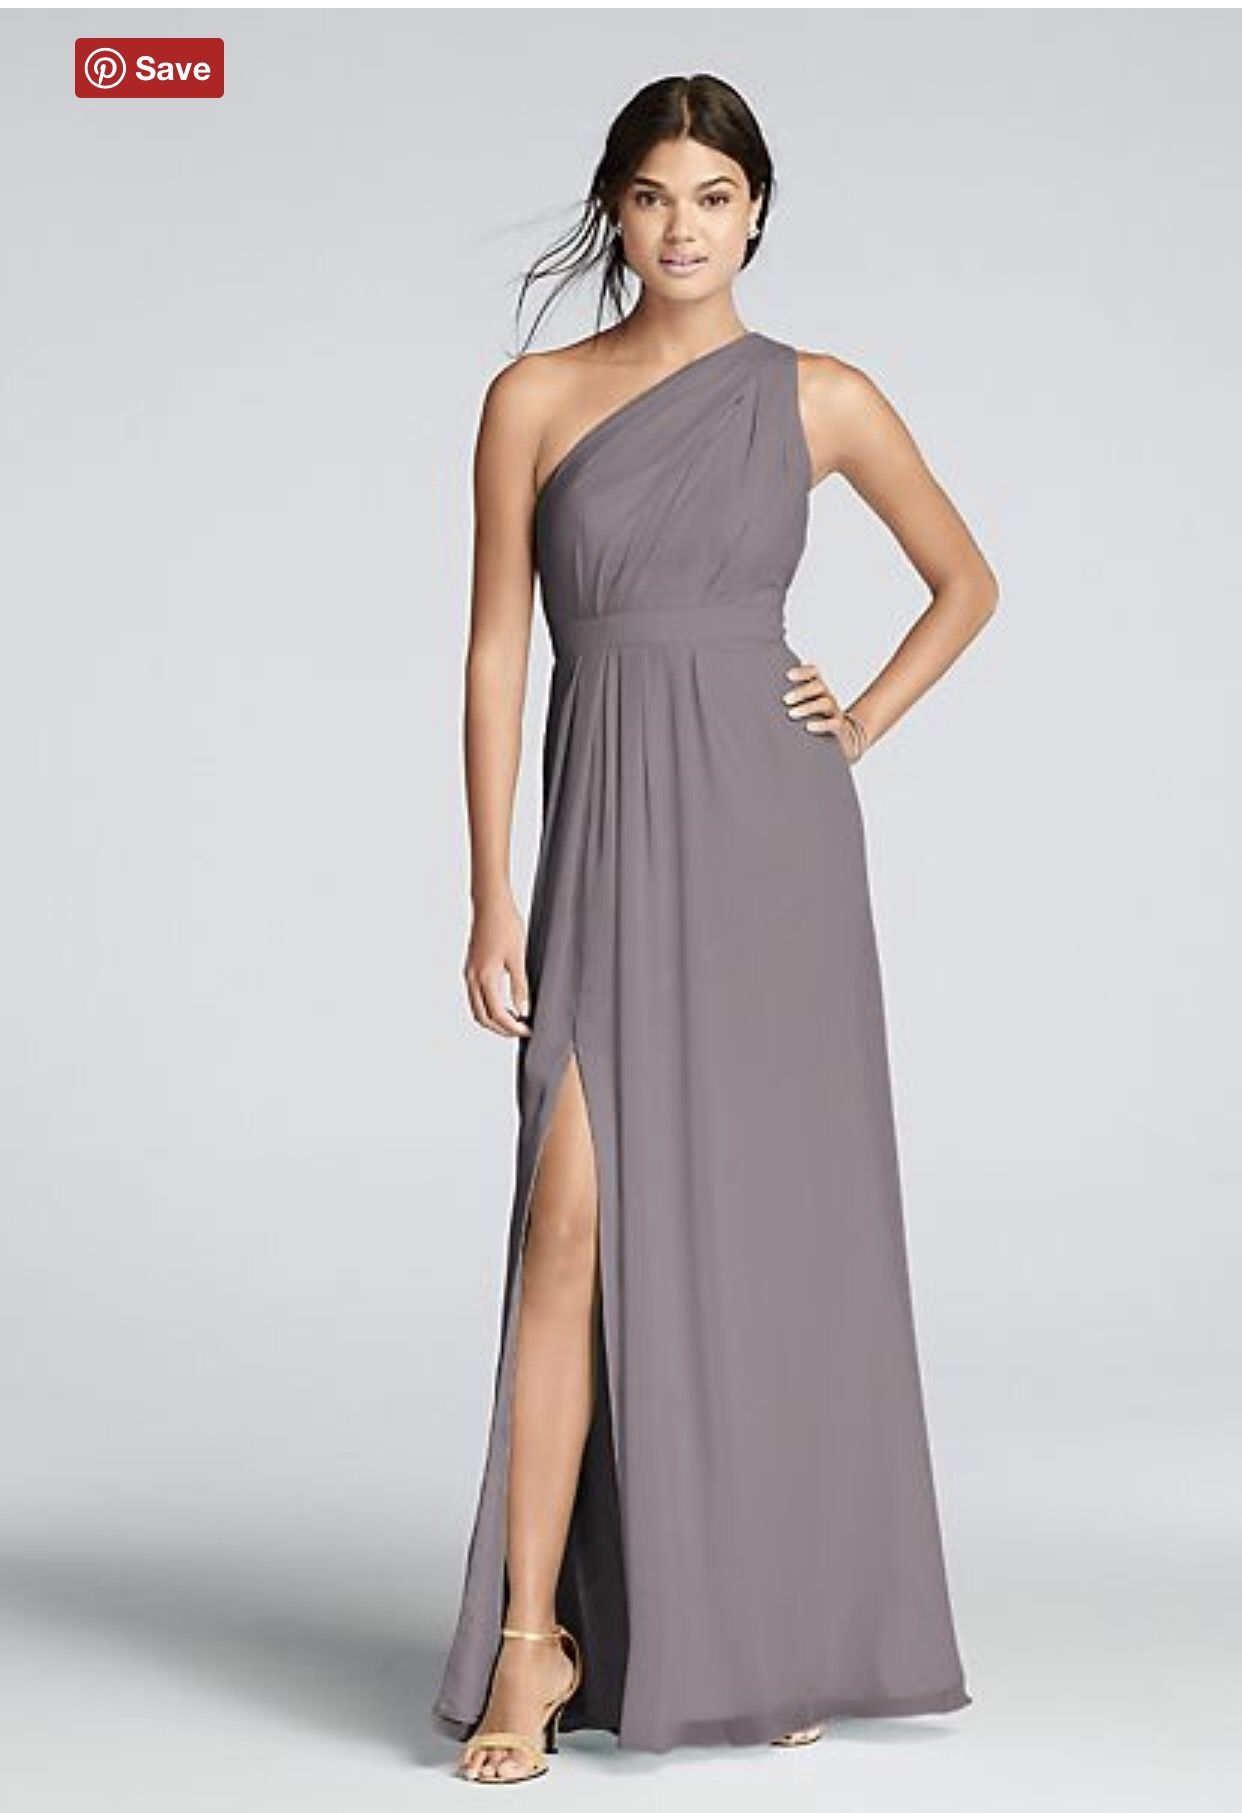 81f28c732e08 Grey One Shoulder Bridesmaid Dress – DACC